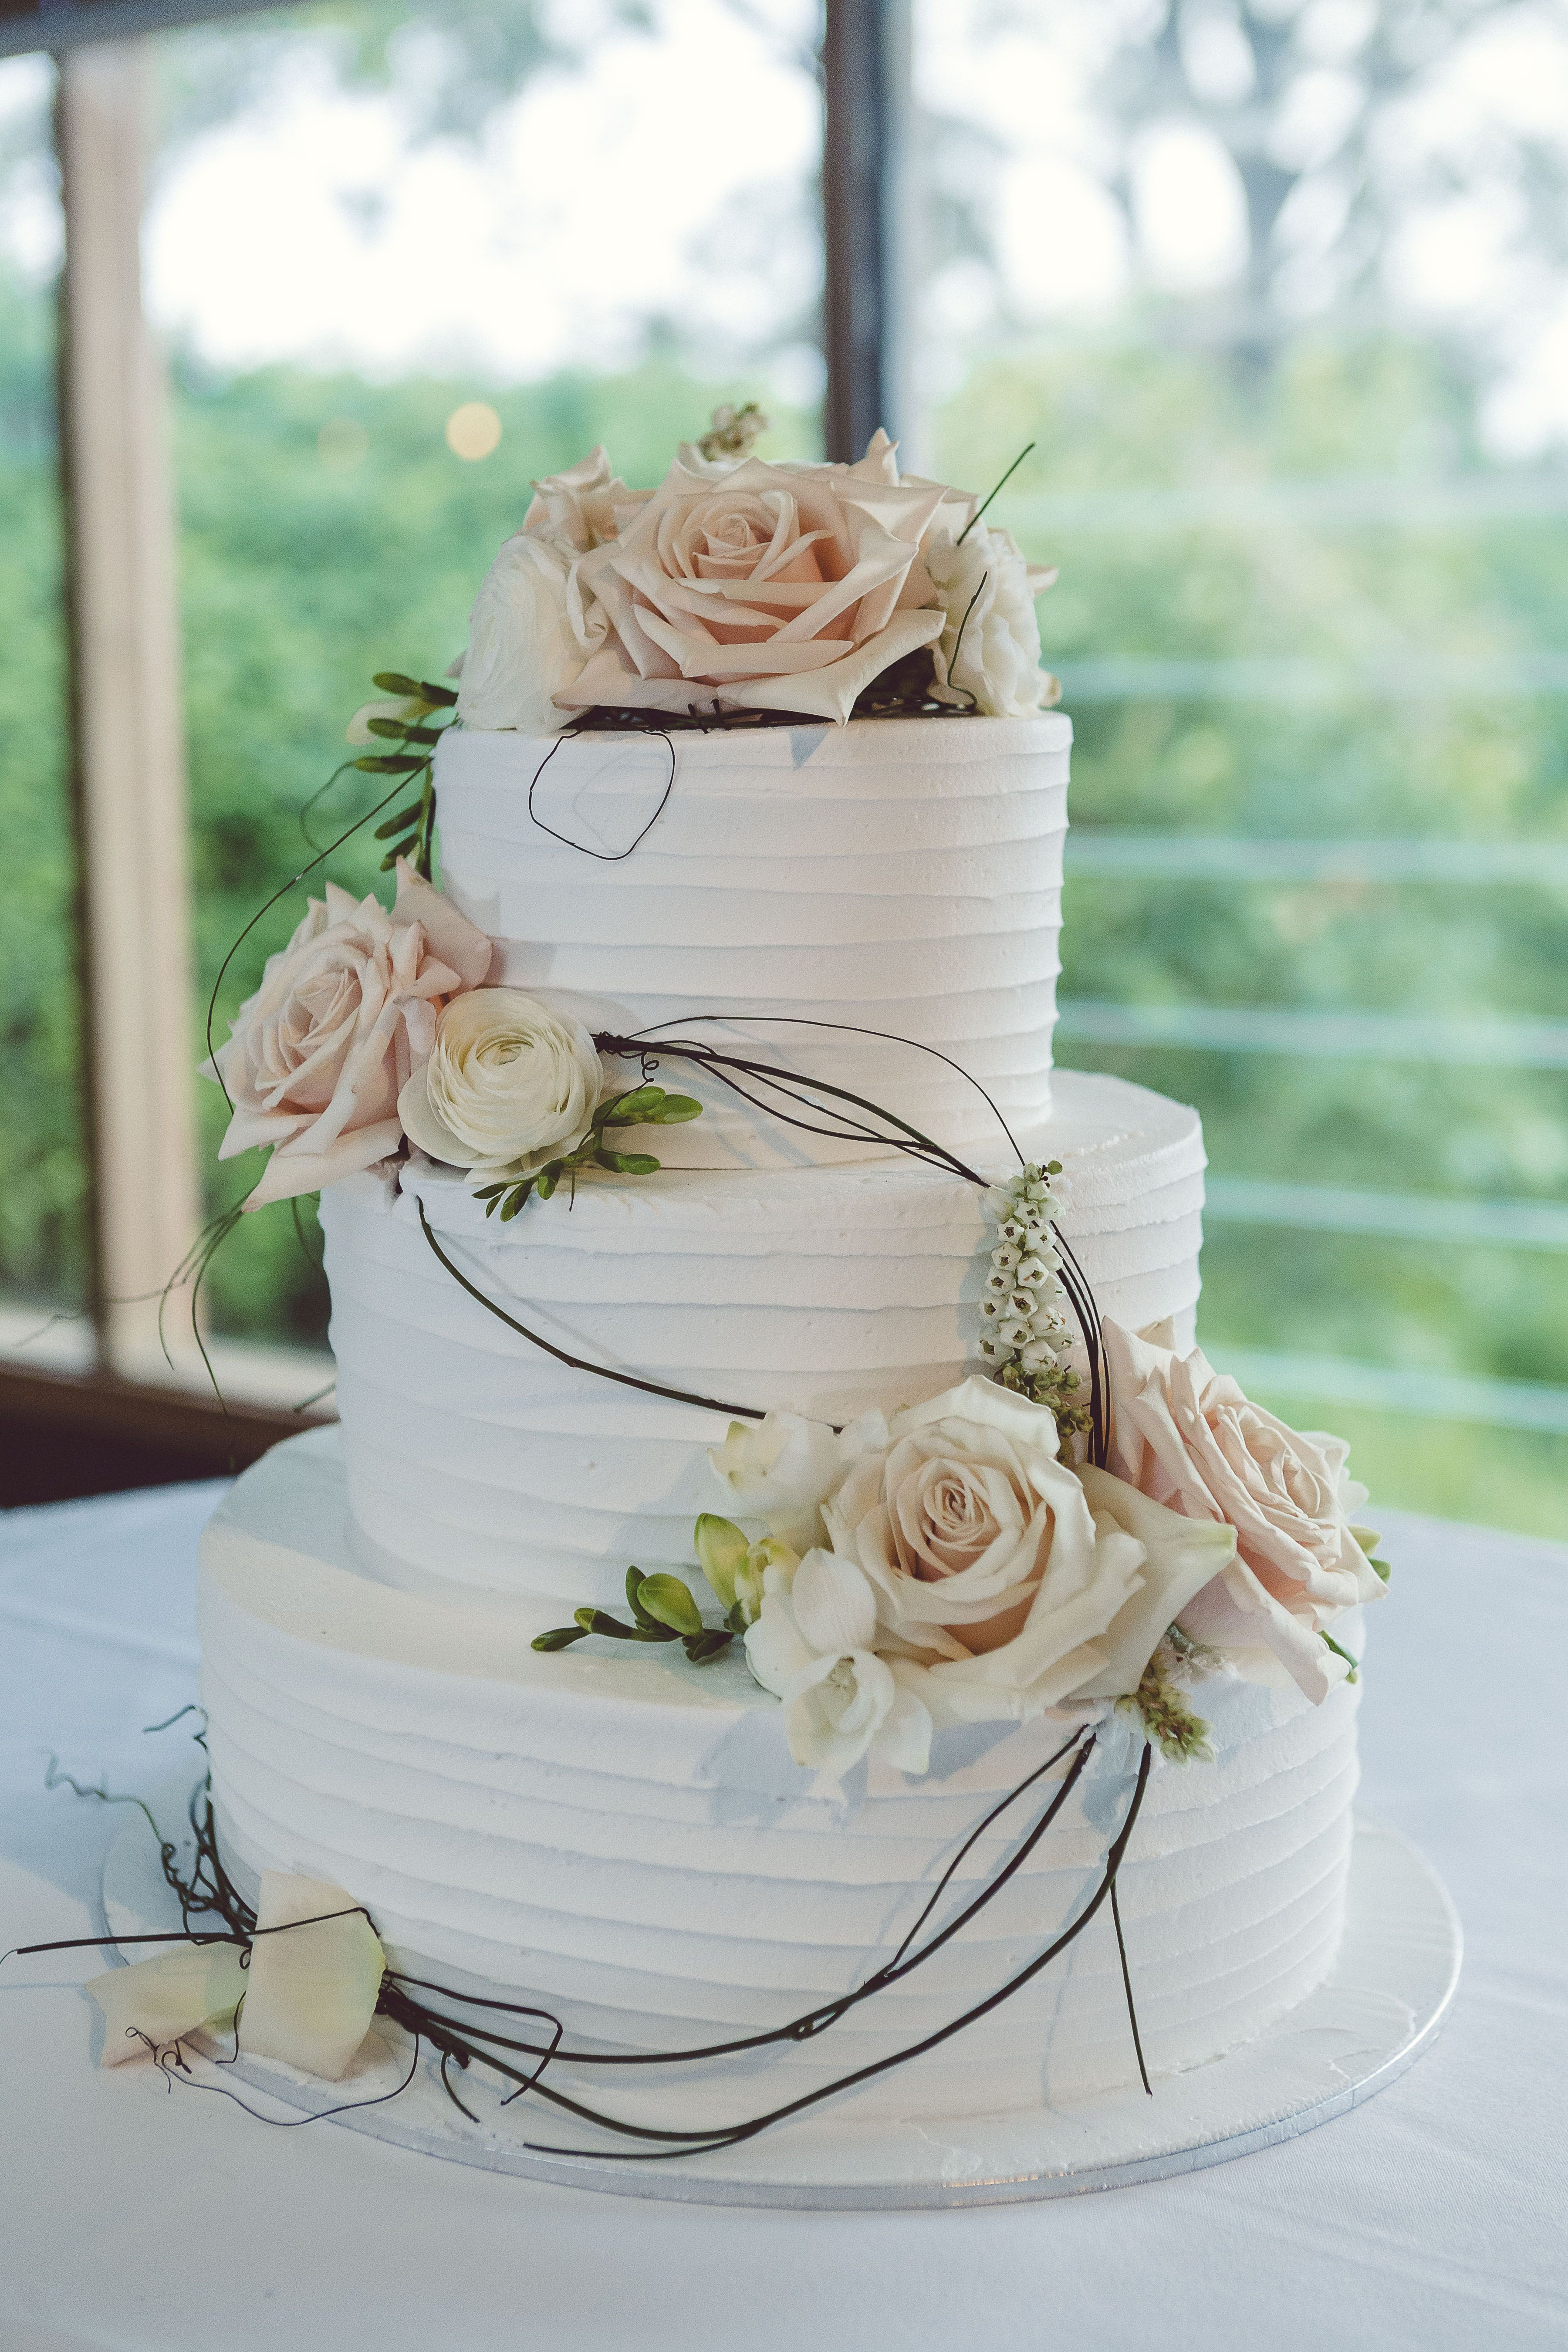 Vintage Wedding Cakes Pictures  wedding cake 3 tier white icing peach and white flowers